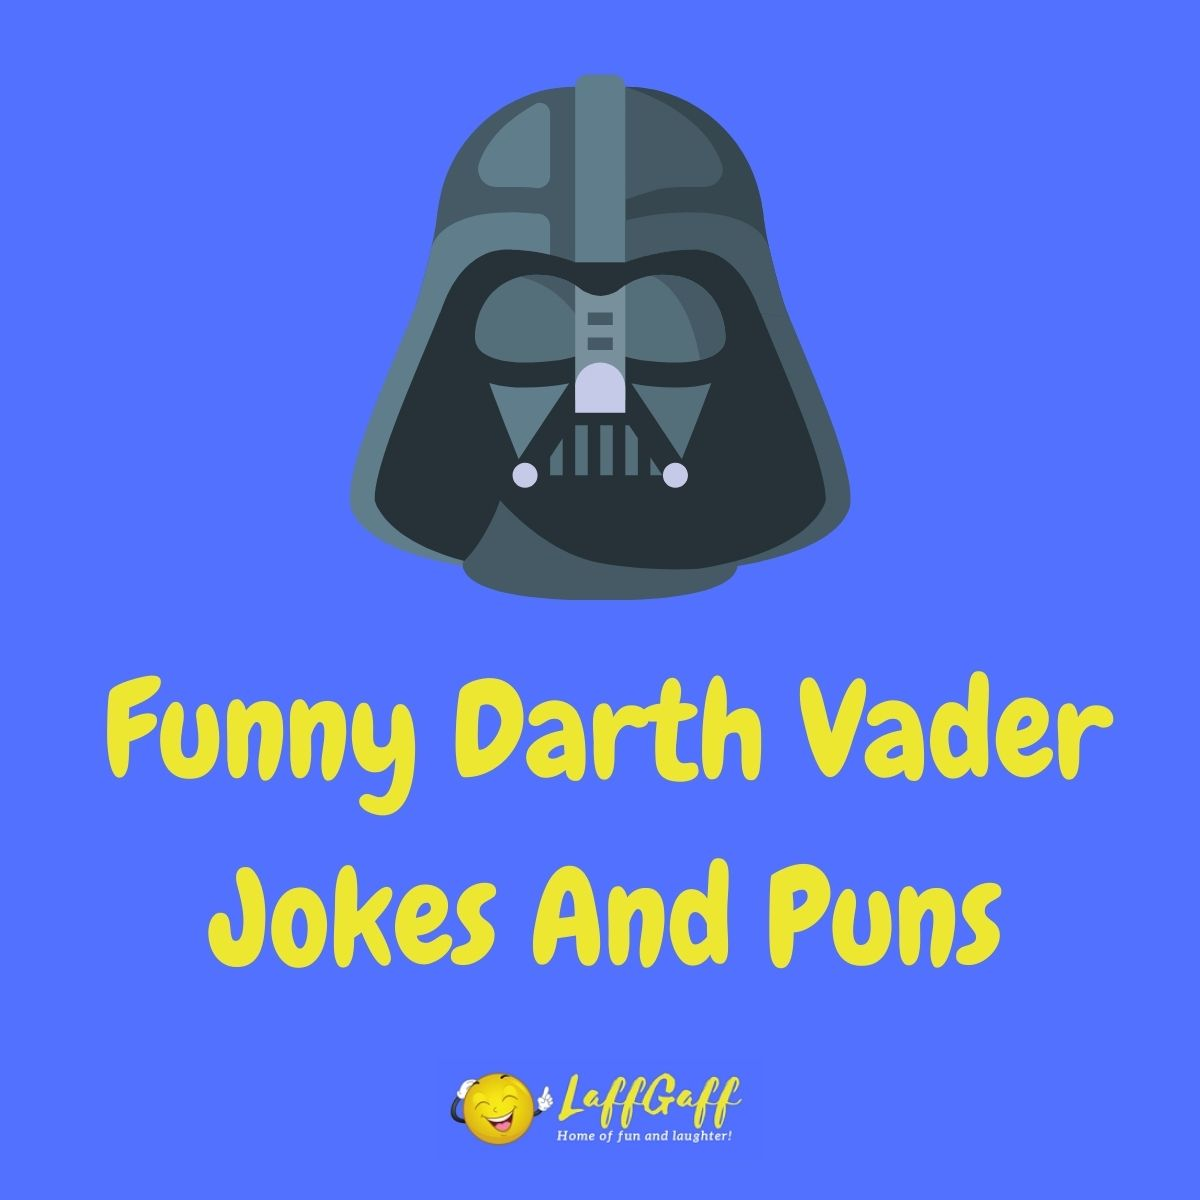 Featured image for a page of funny Darth Vader jokes and puns.